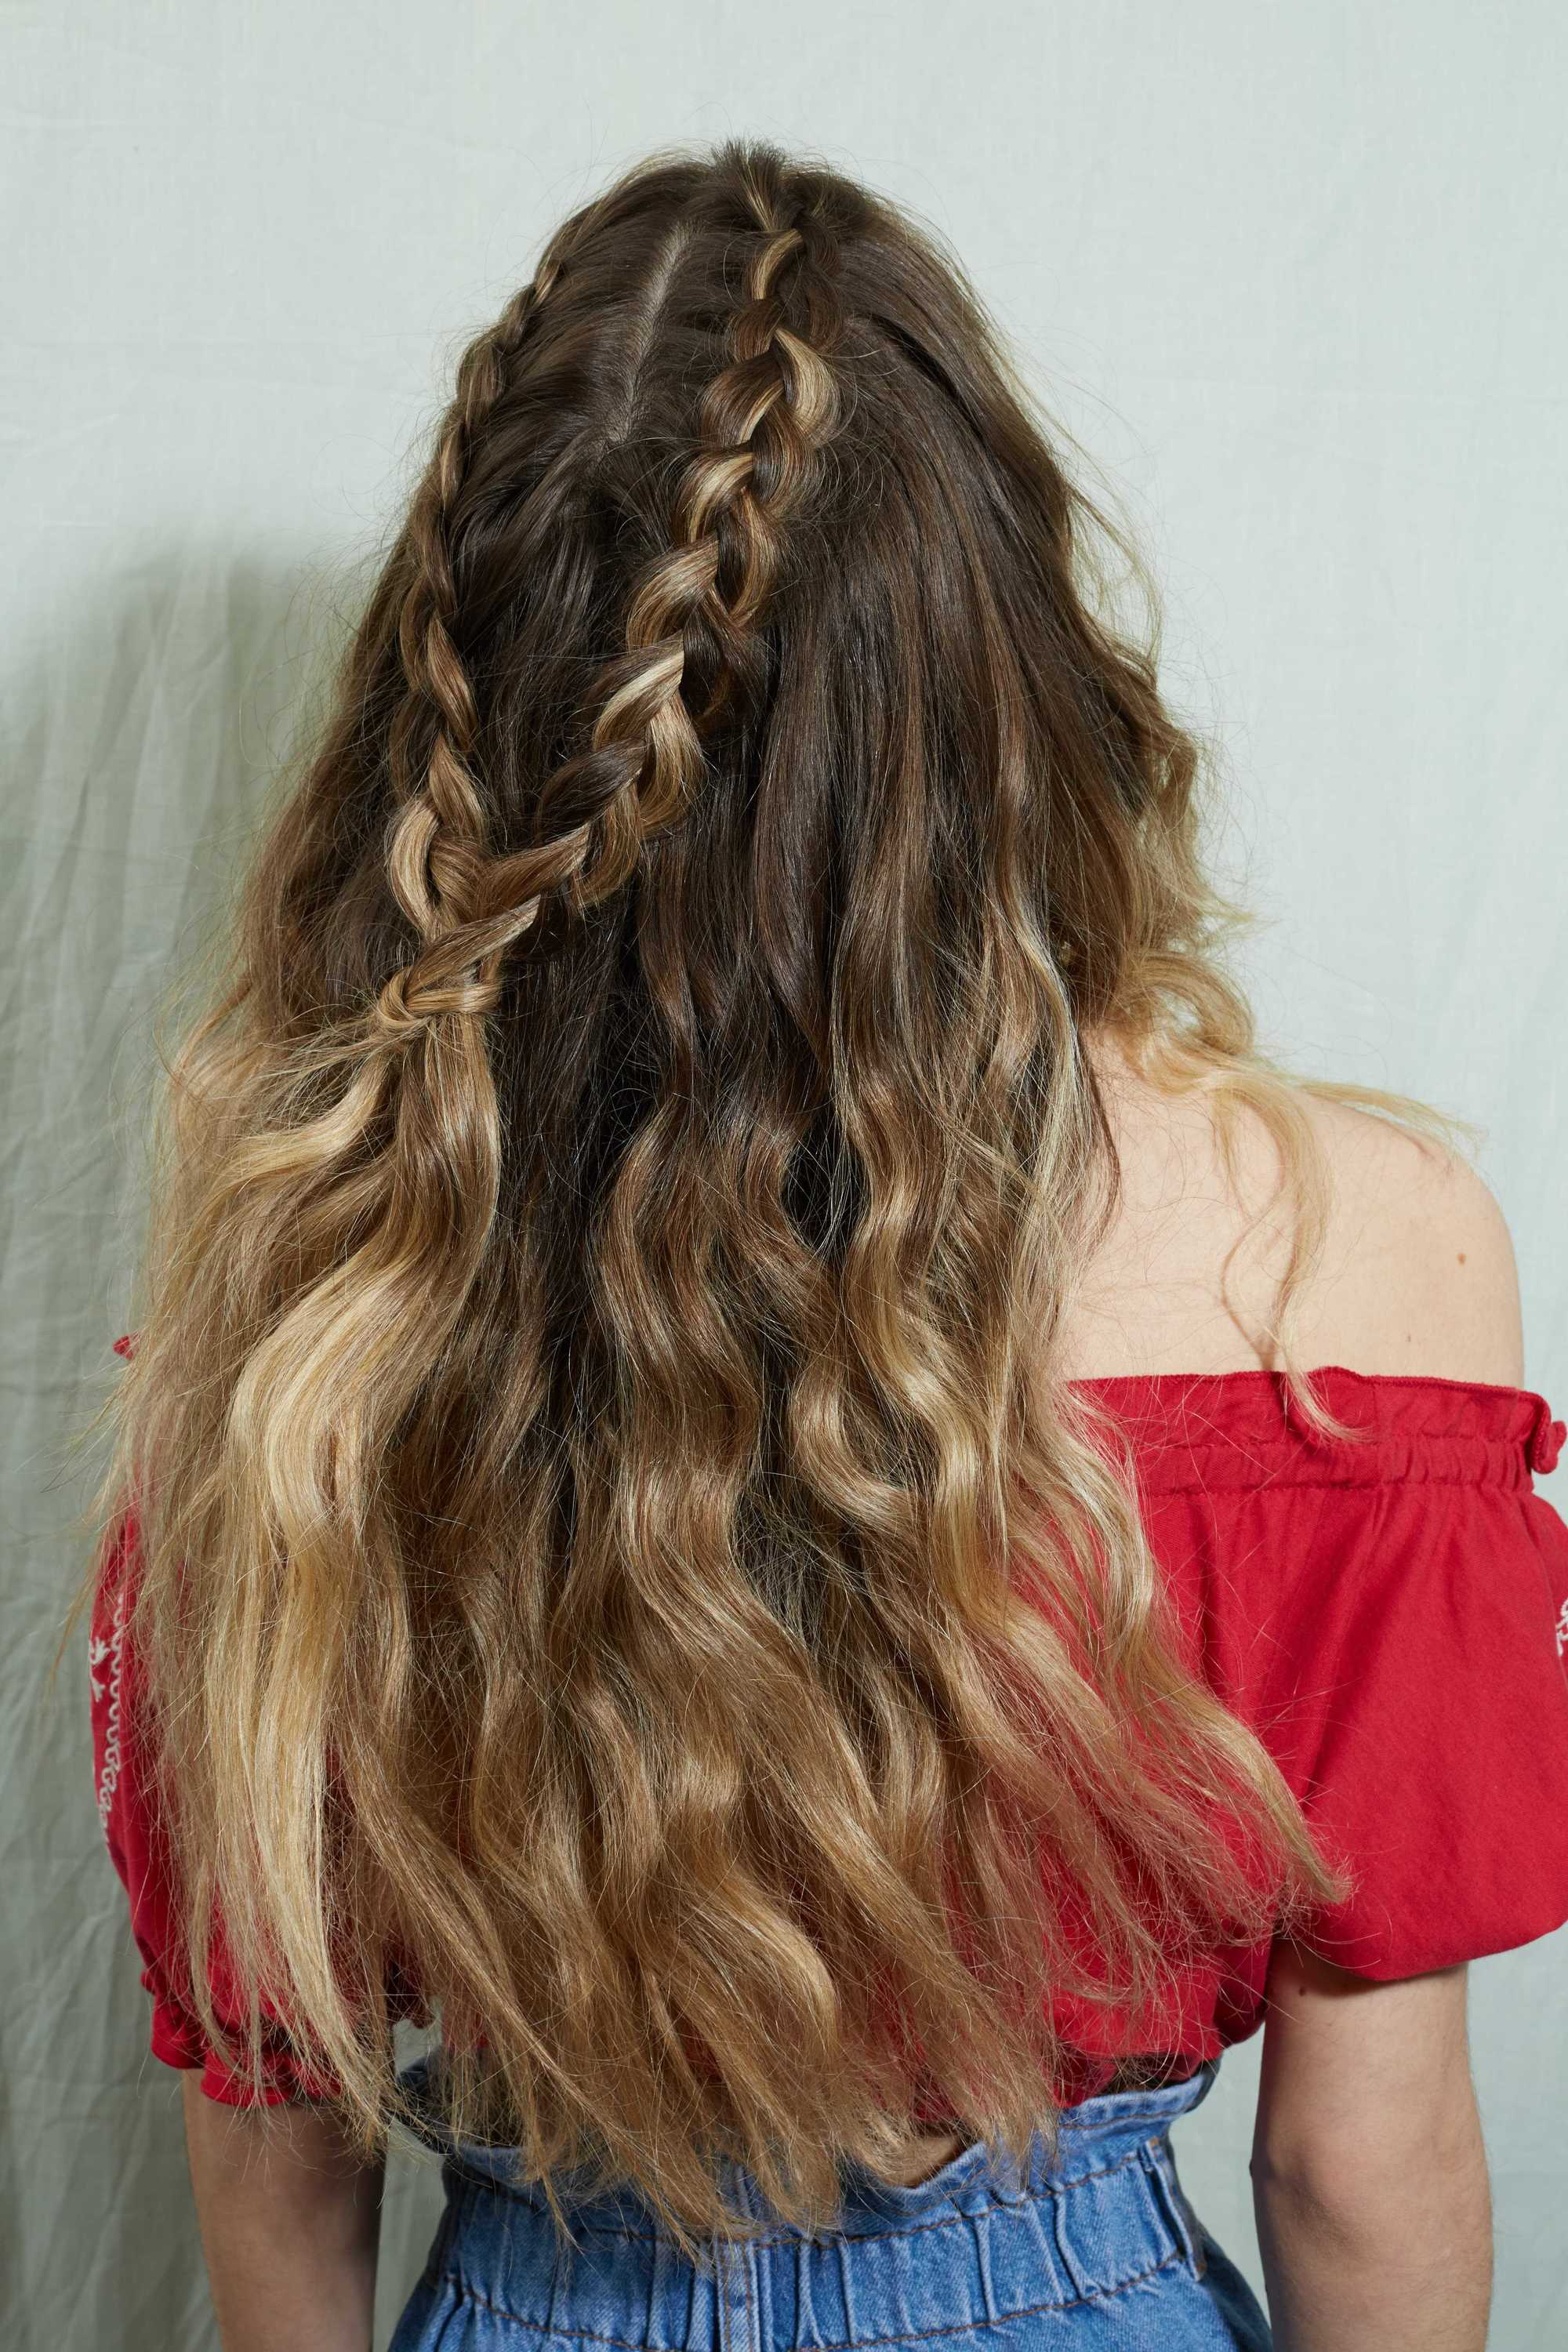 Woman with wavy brunette ombre hair in a half-up braid